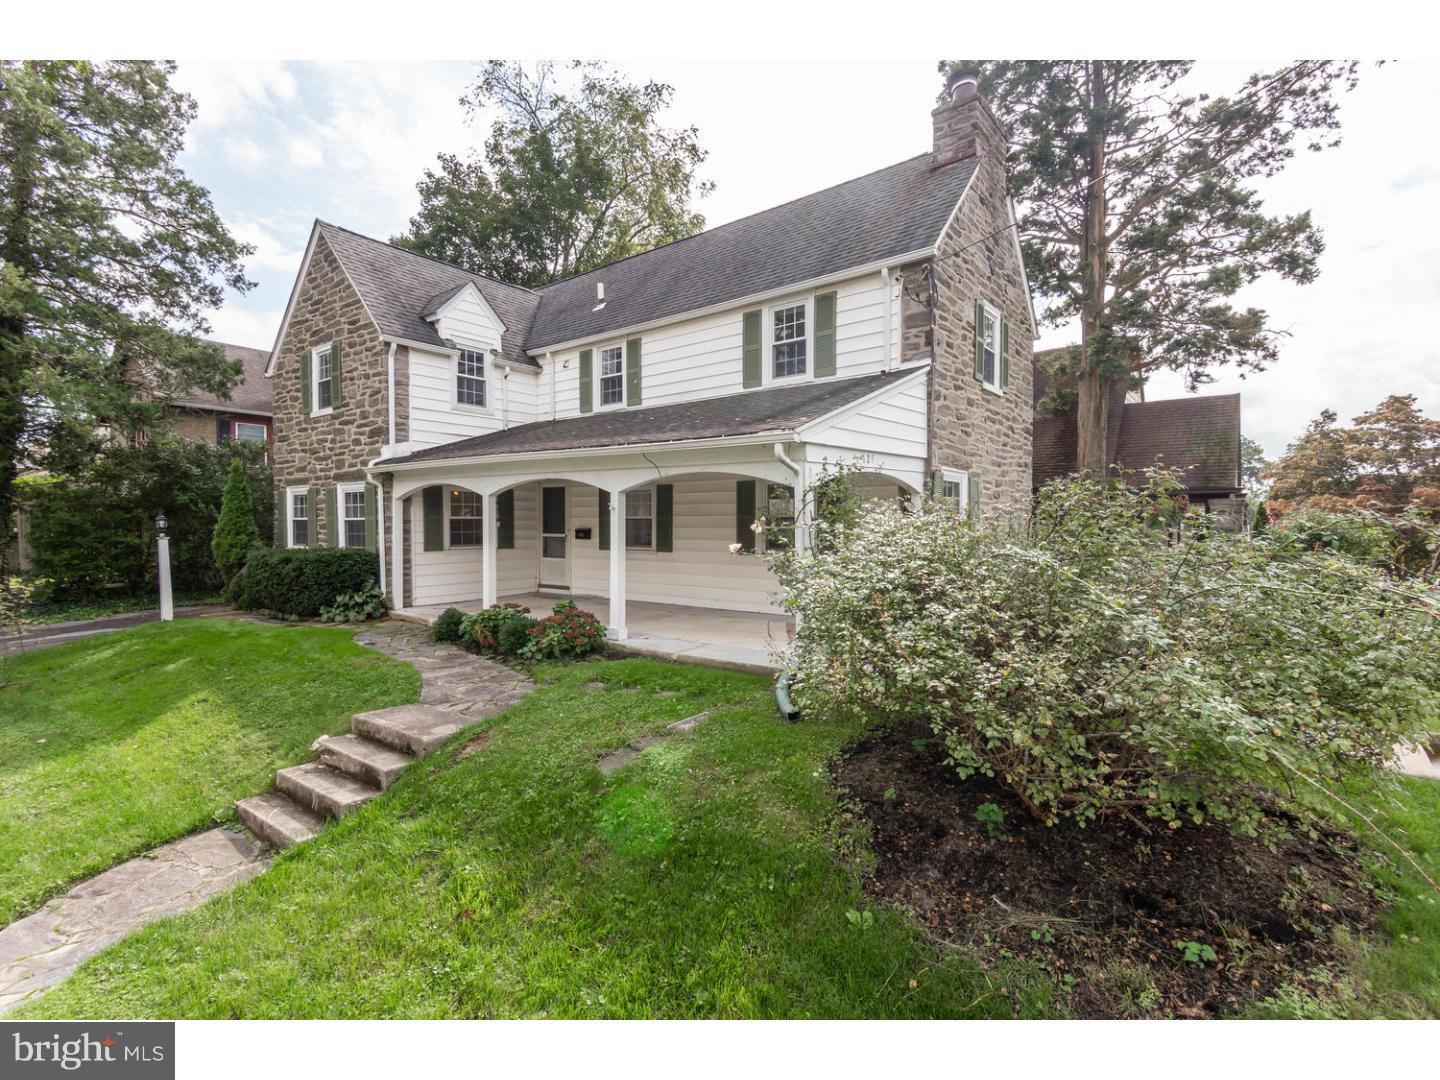 125 W Hillcrest Avenue Havertown, PA 19083